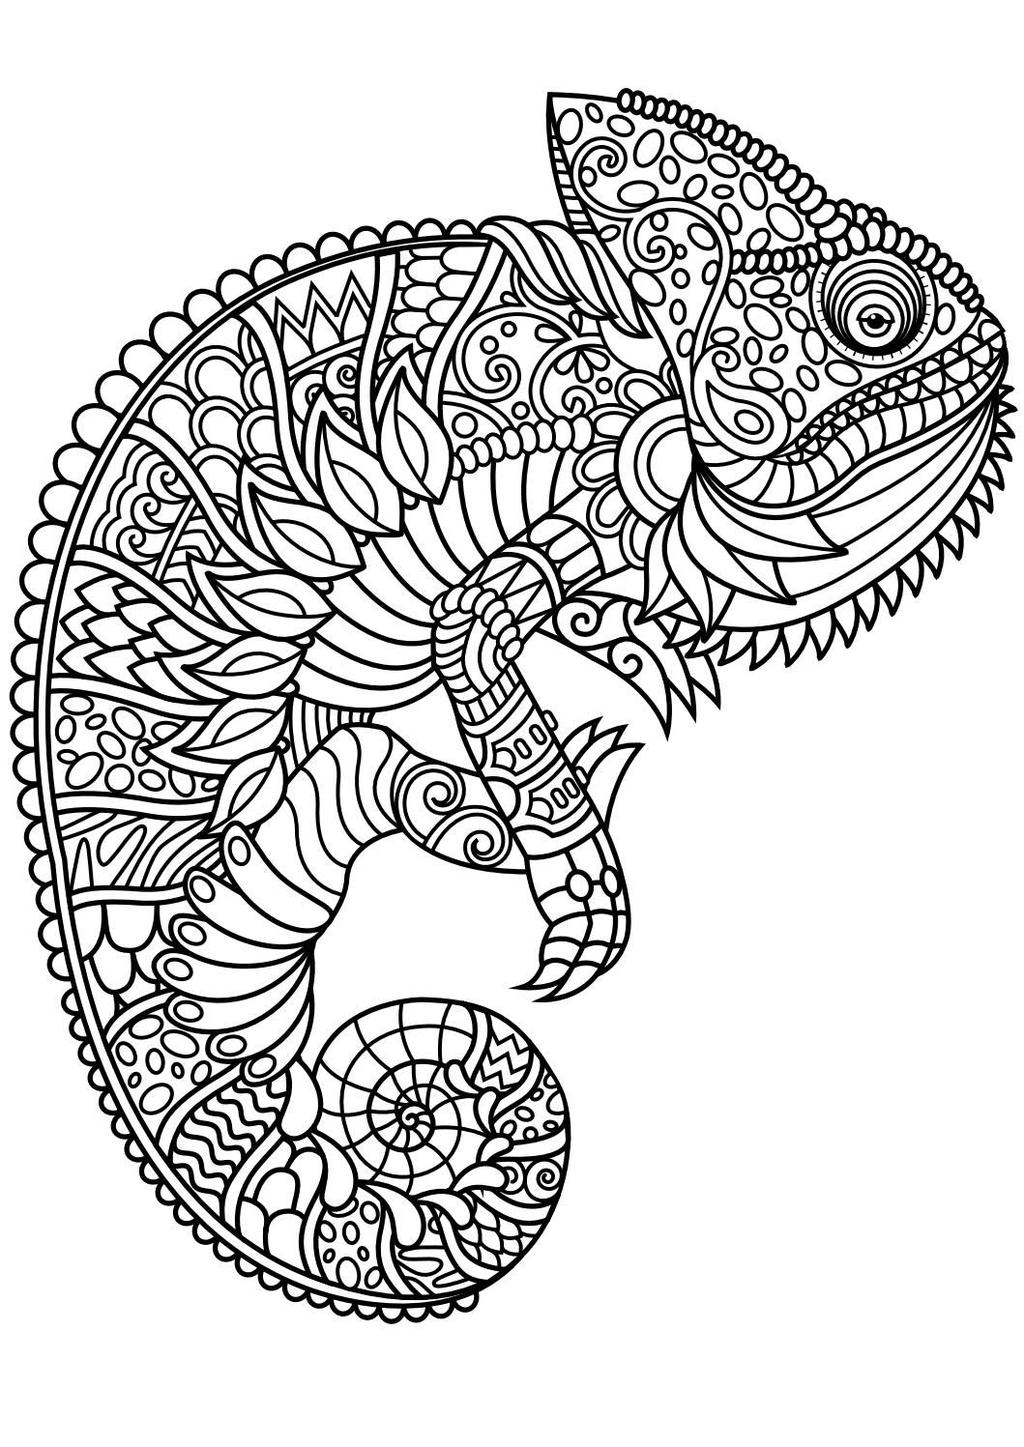 Lizard Mindfulness Coloring Pages Free Printable